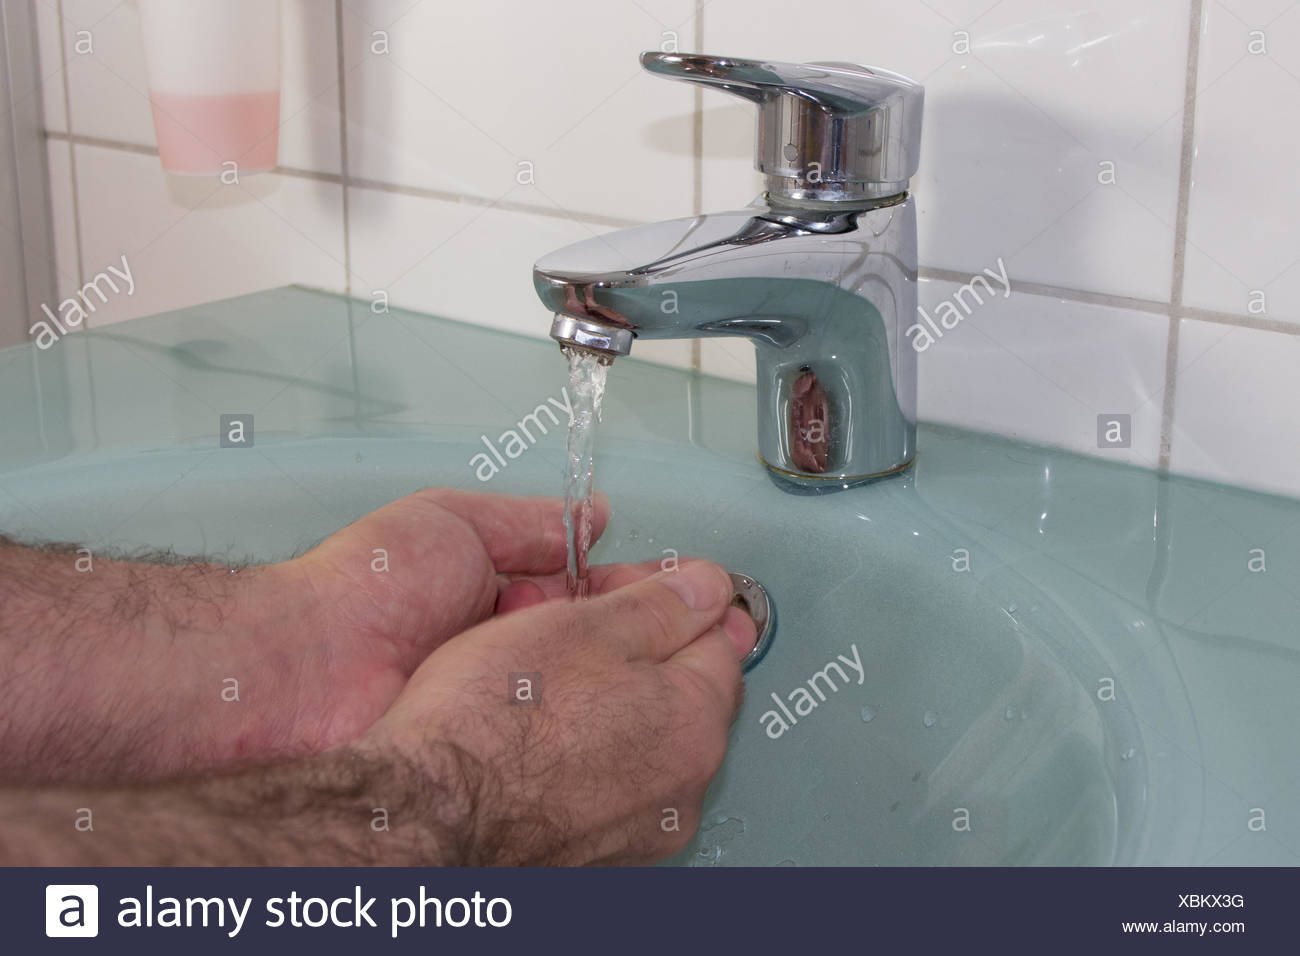 Cropped Image Of Person Washing Hands In Bathroom - Stock Image